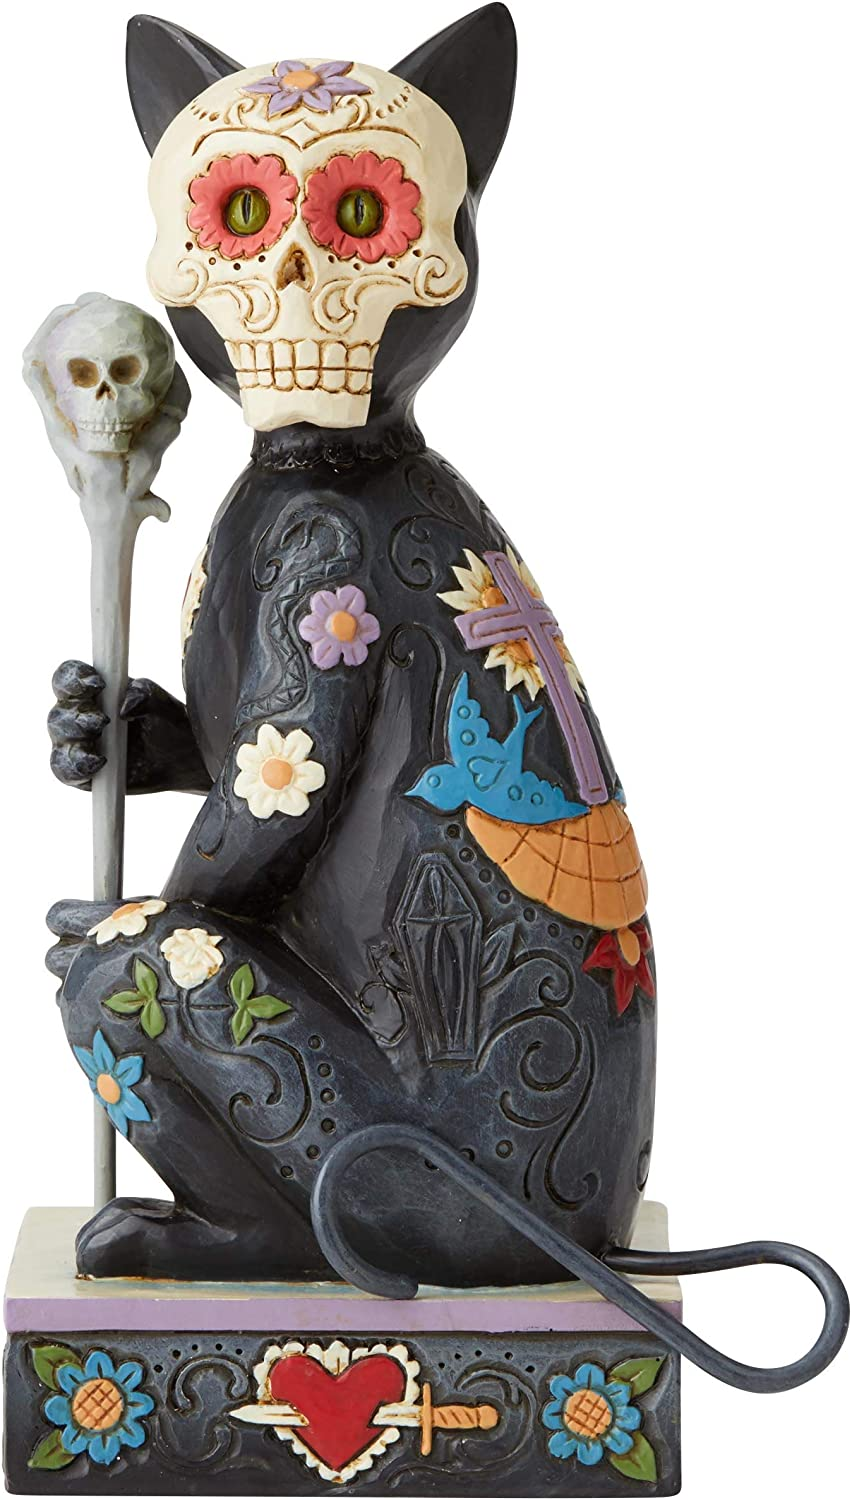 Enesco Jim Shore 6004327 Day of The Dead Cat Figurine, Resin,6.5Inches,Multicolor